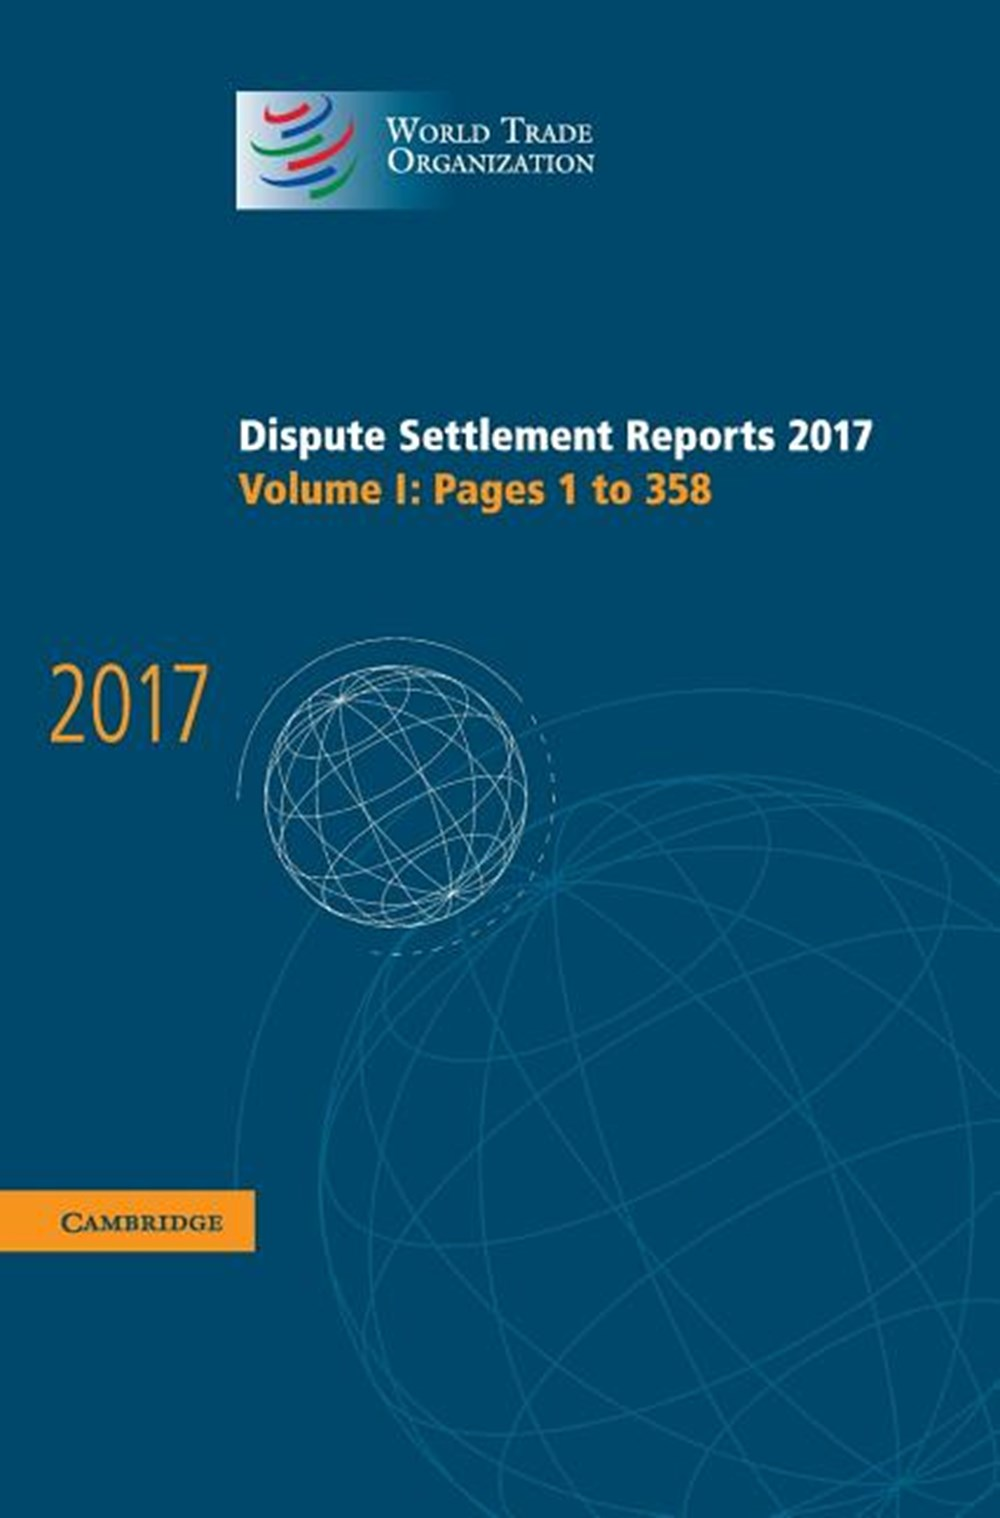 Dispute Settlement Reports 2017 Volume 1, Pages 1 to 358